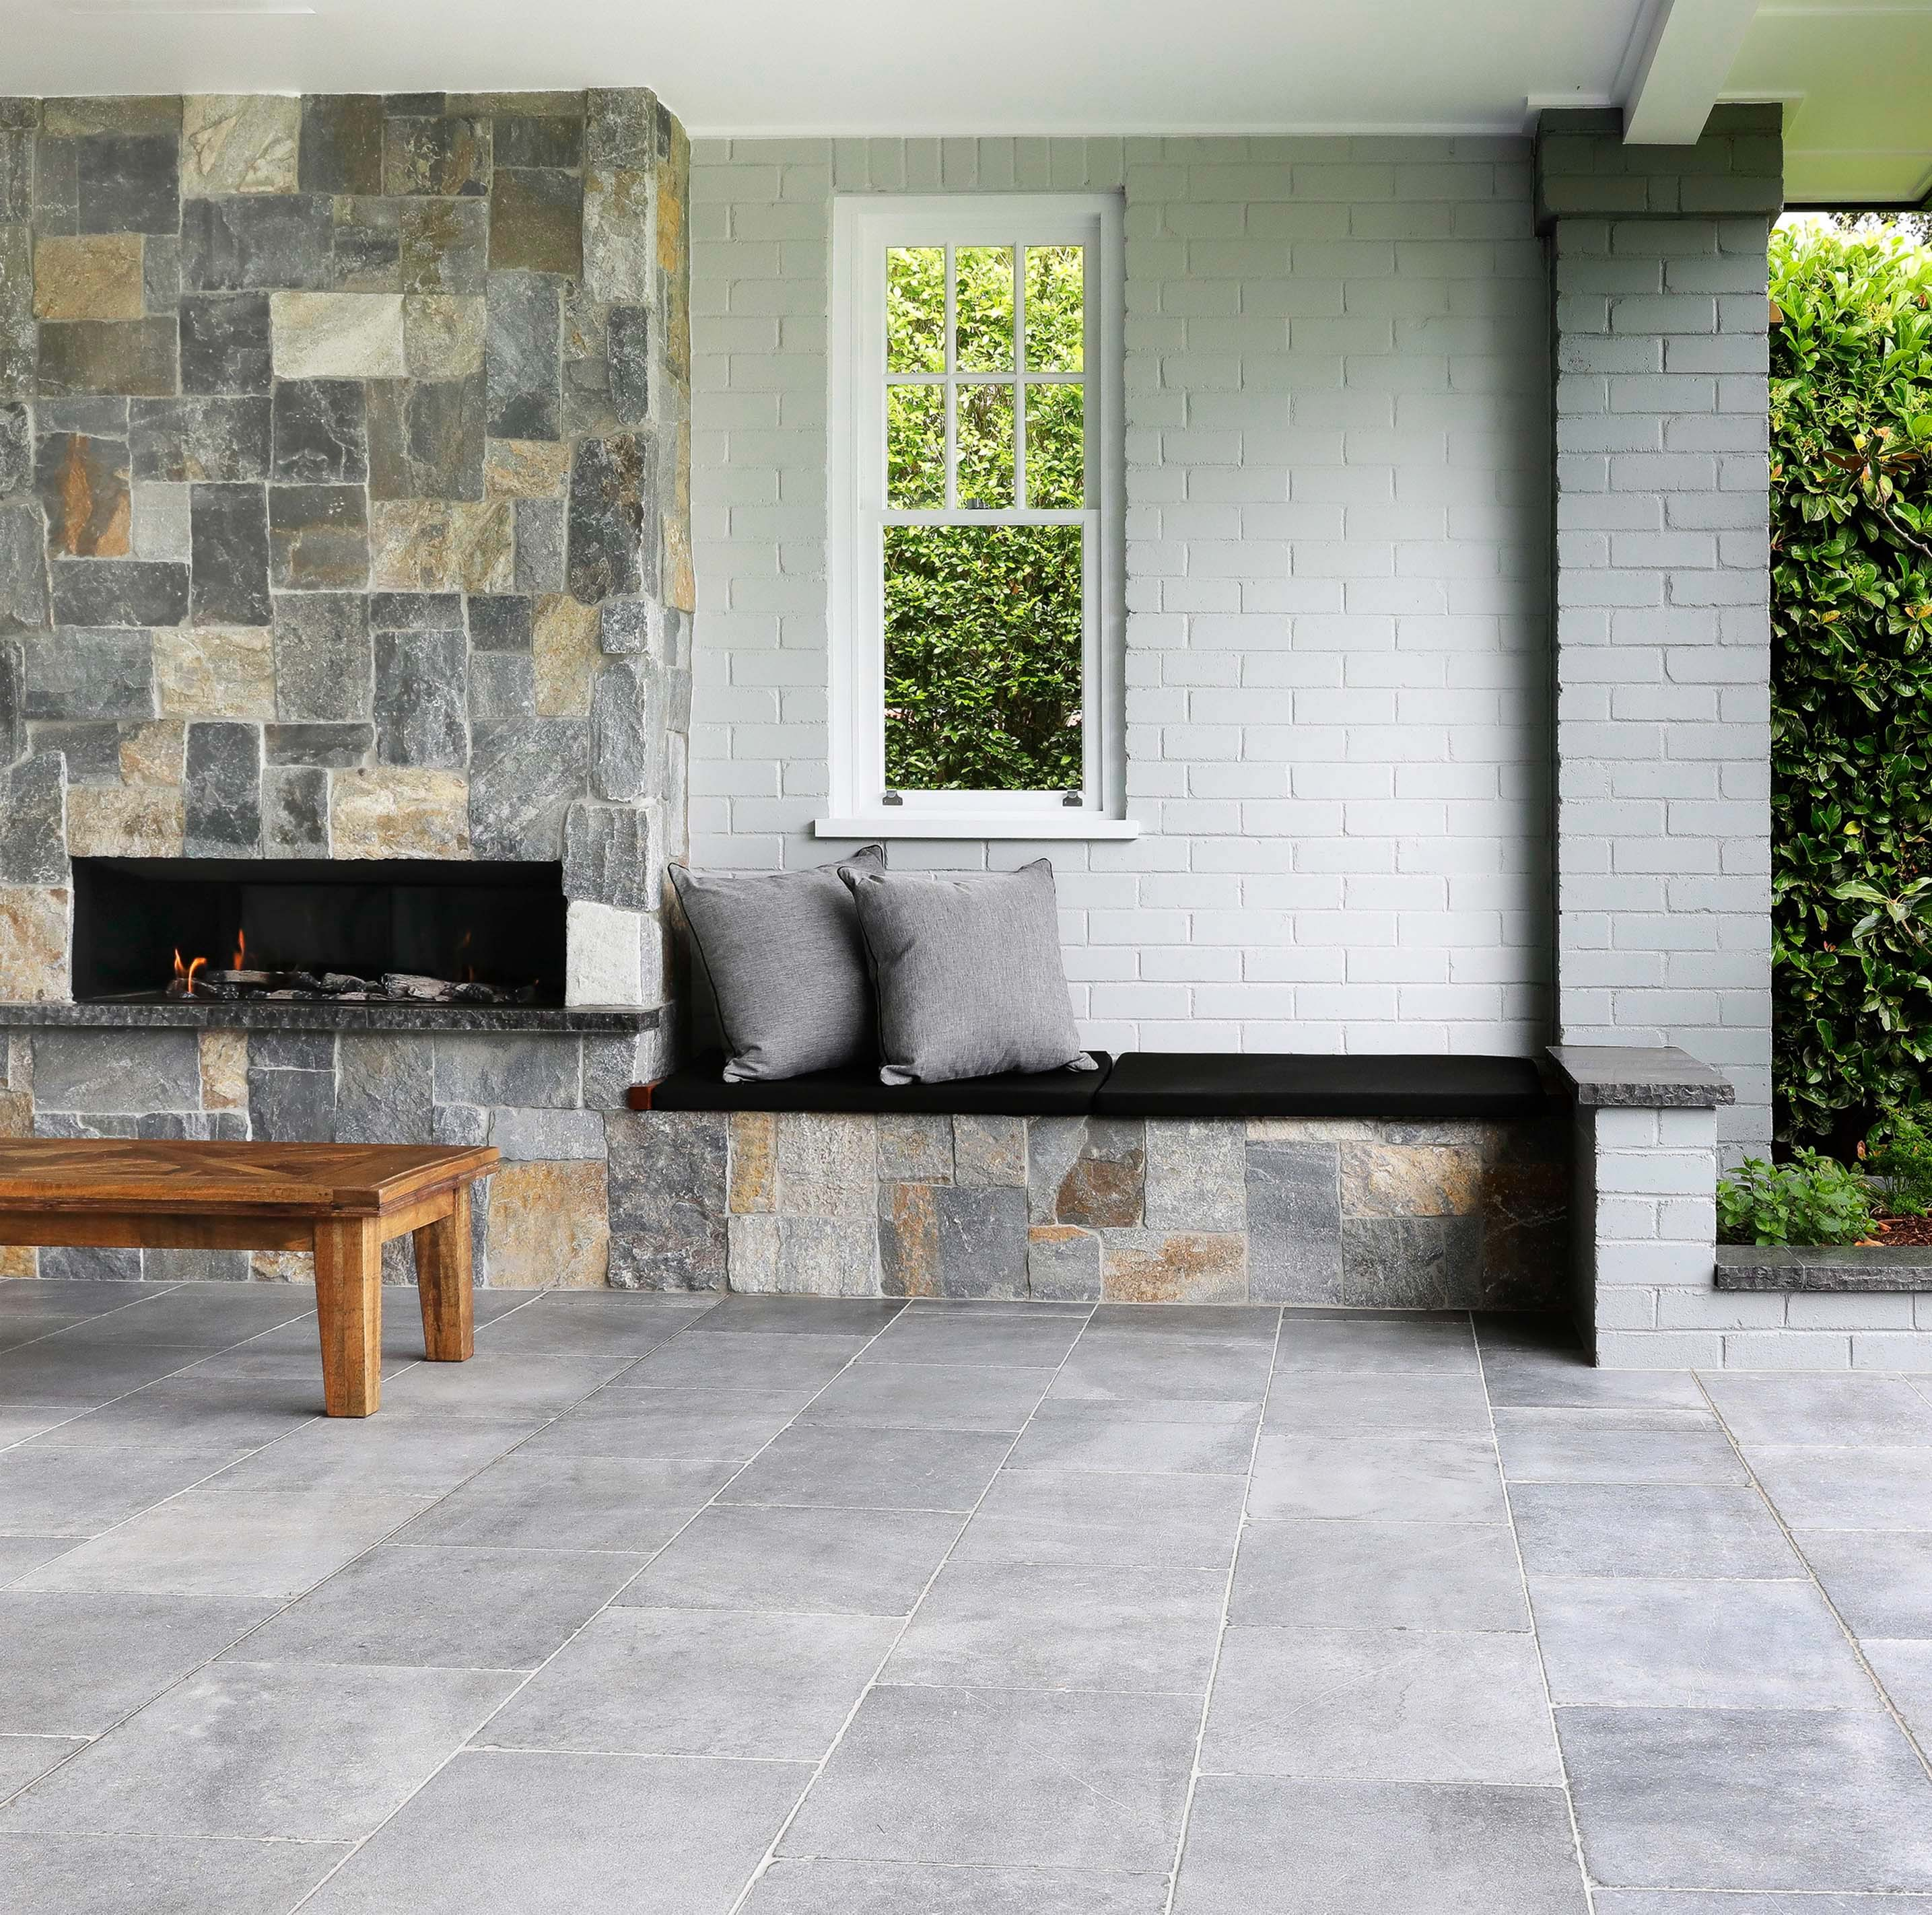 Blog hero-article-images which-better-flooring-stone-or wood